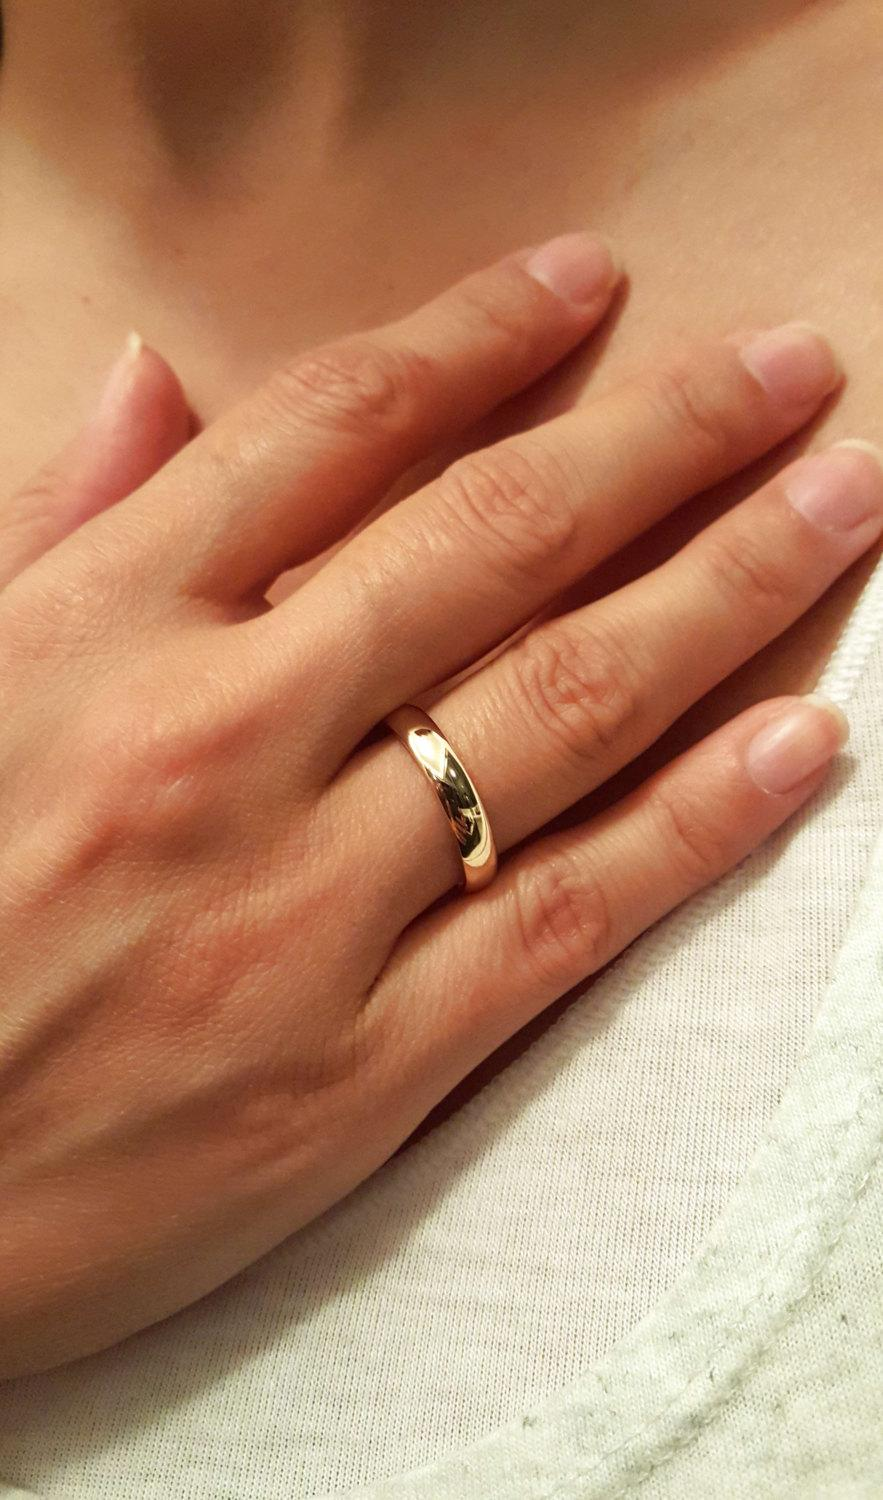 14k Solid Gold Wedding Engagement Ring His And Hers Men Womens Matching Bands Clic Uni Band